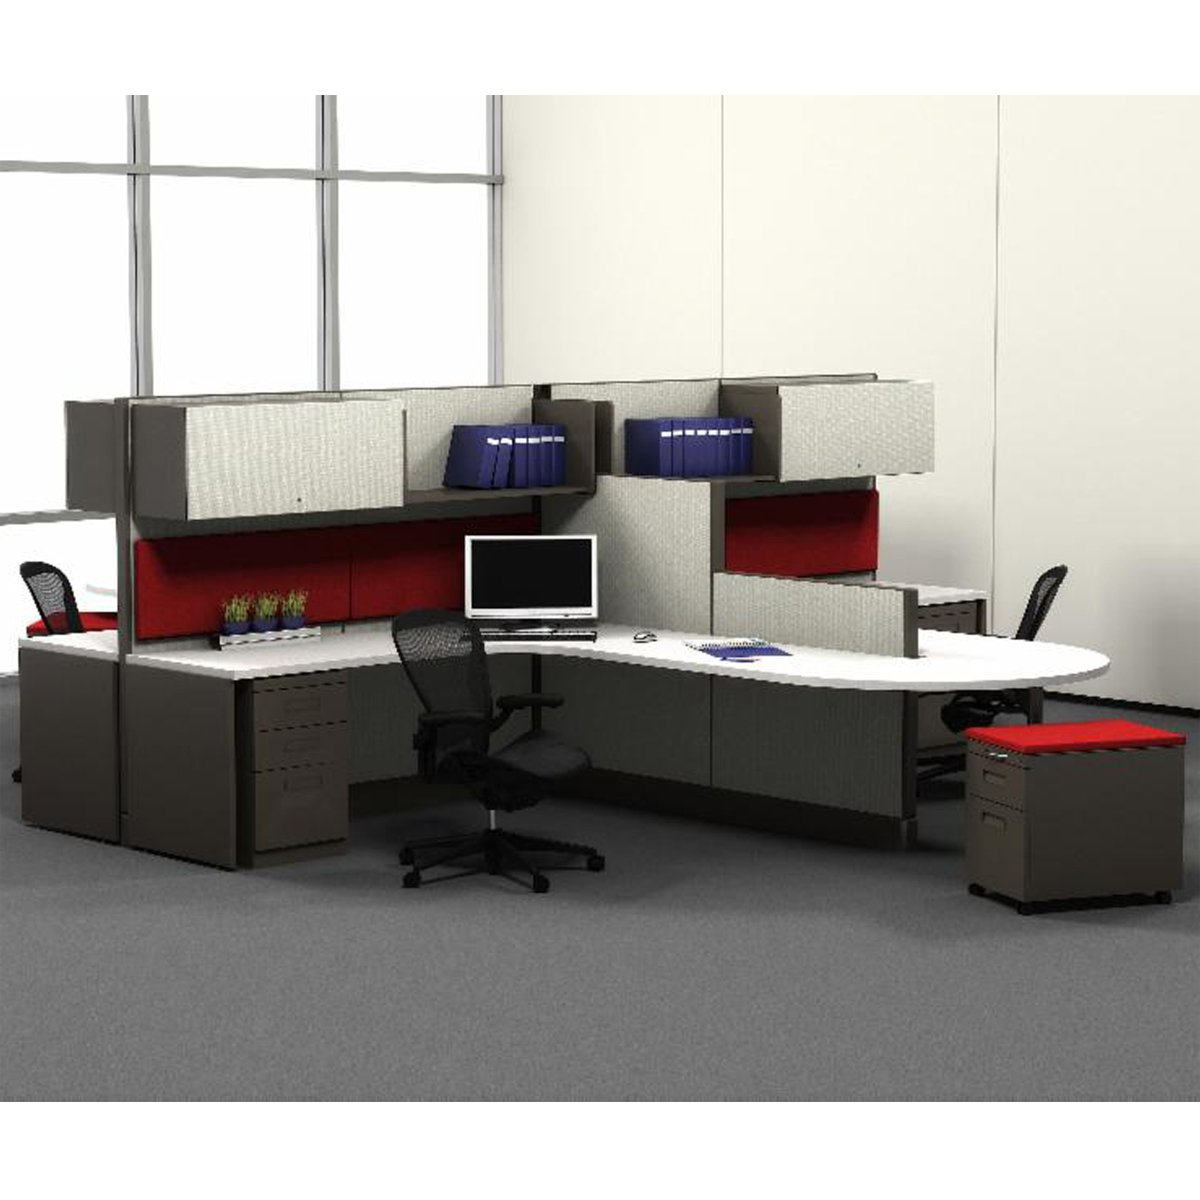 custom re-manufactured herman miller modular office furniture systems